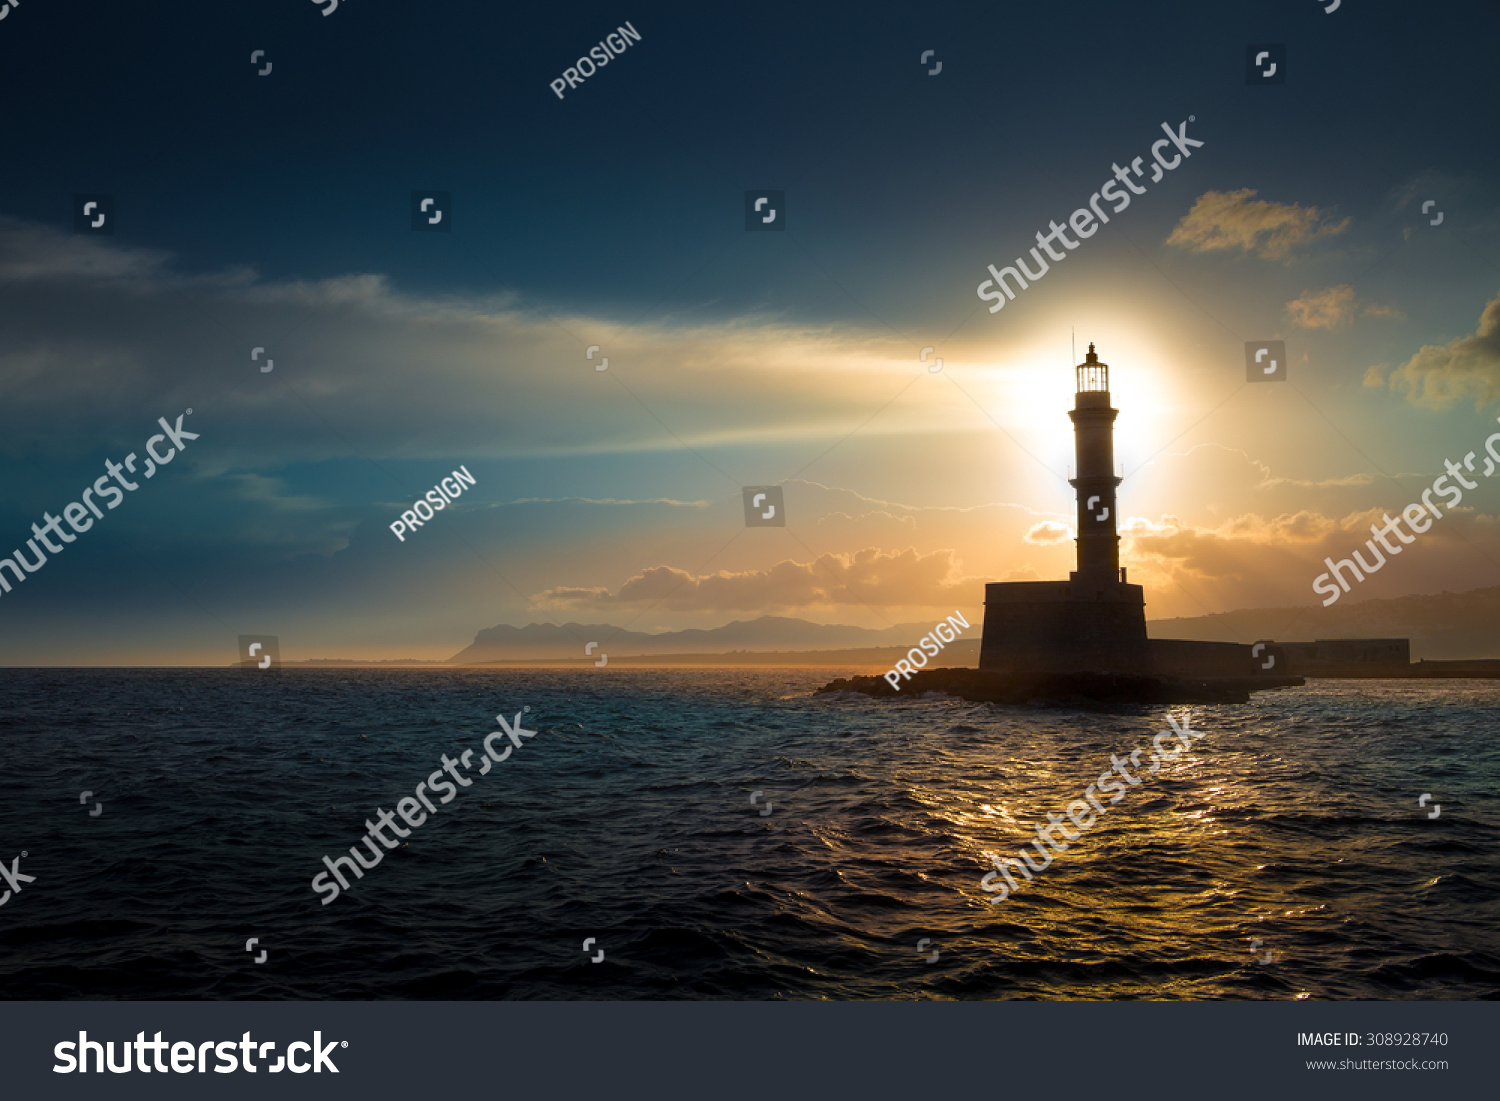 Lighthouse on sunset. #308928740